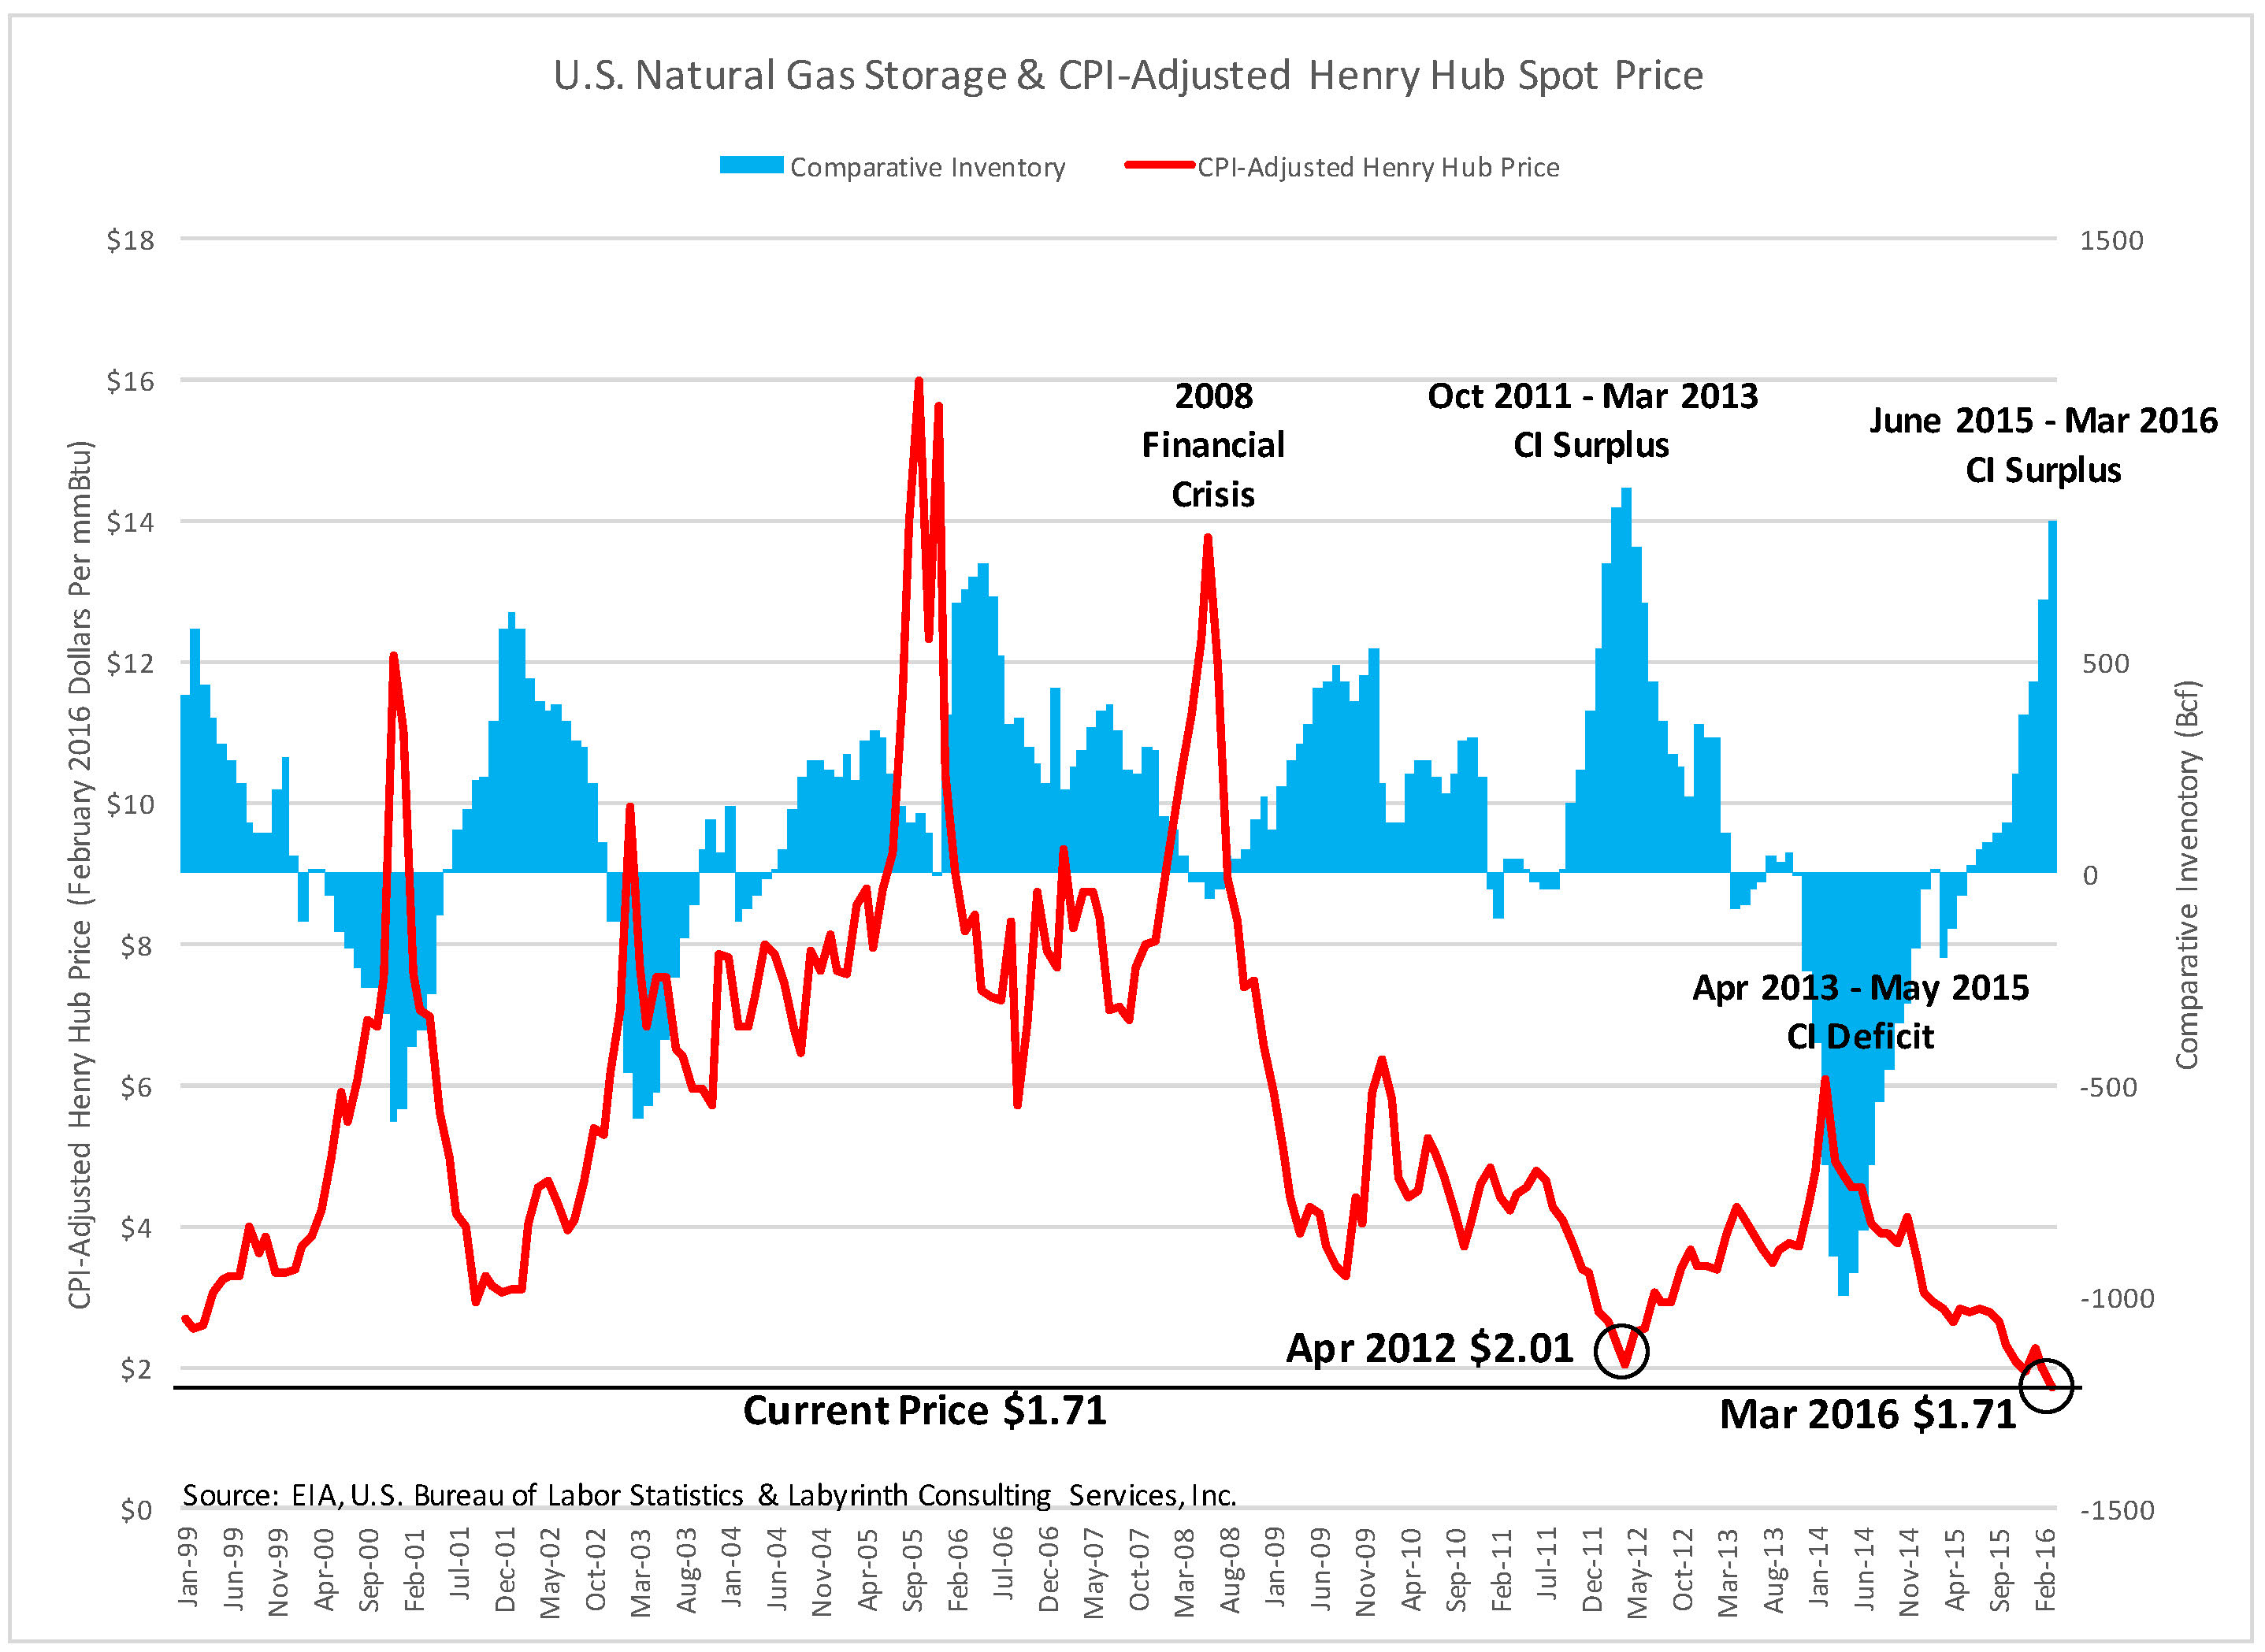 Natural Gas Price Forecast Values